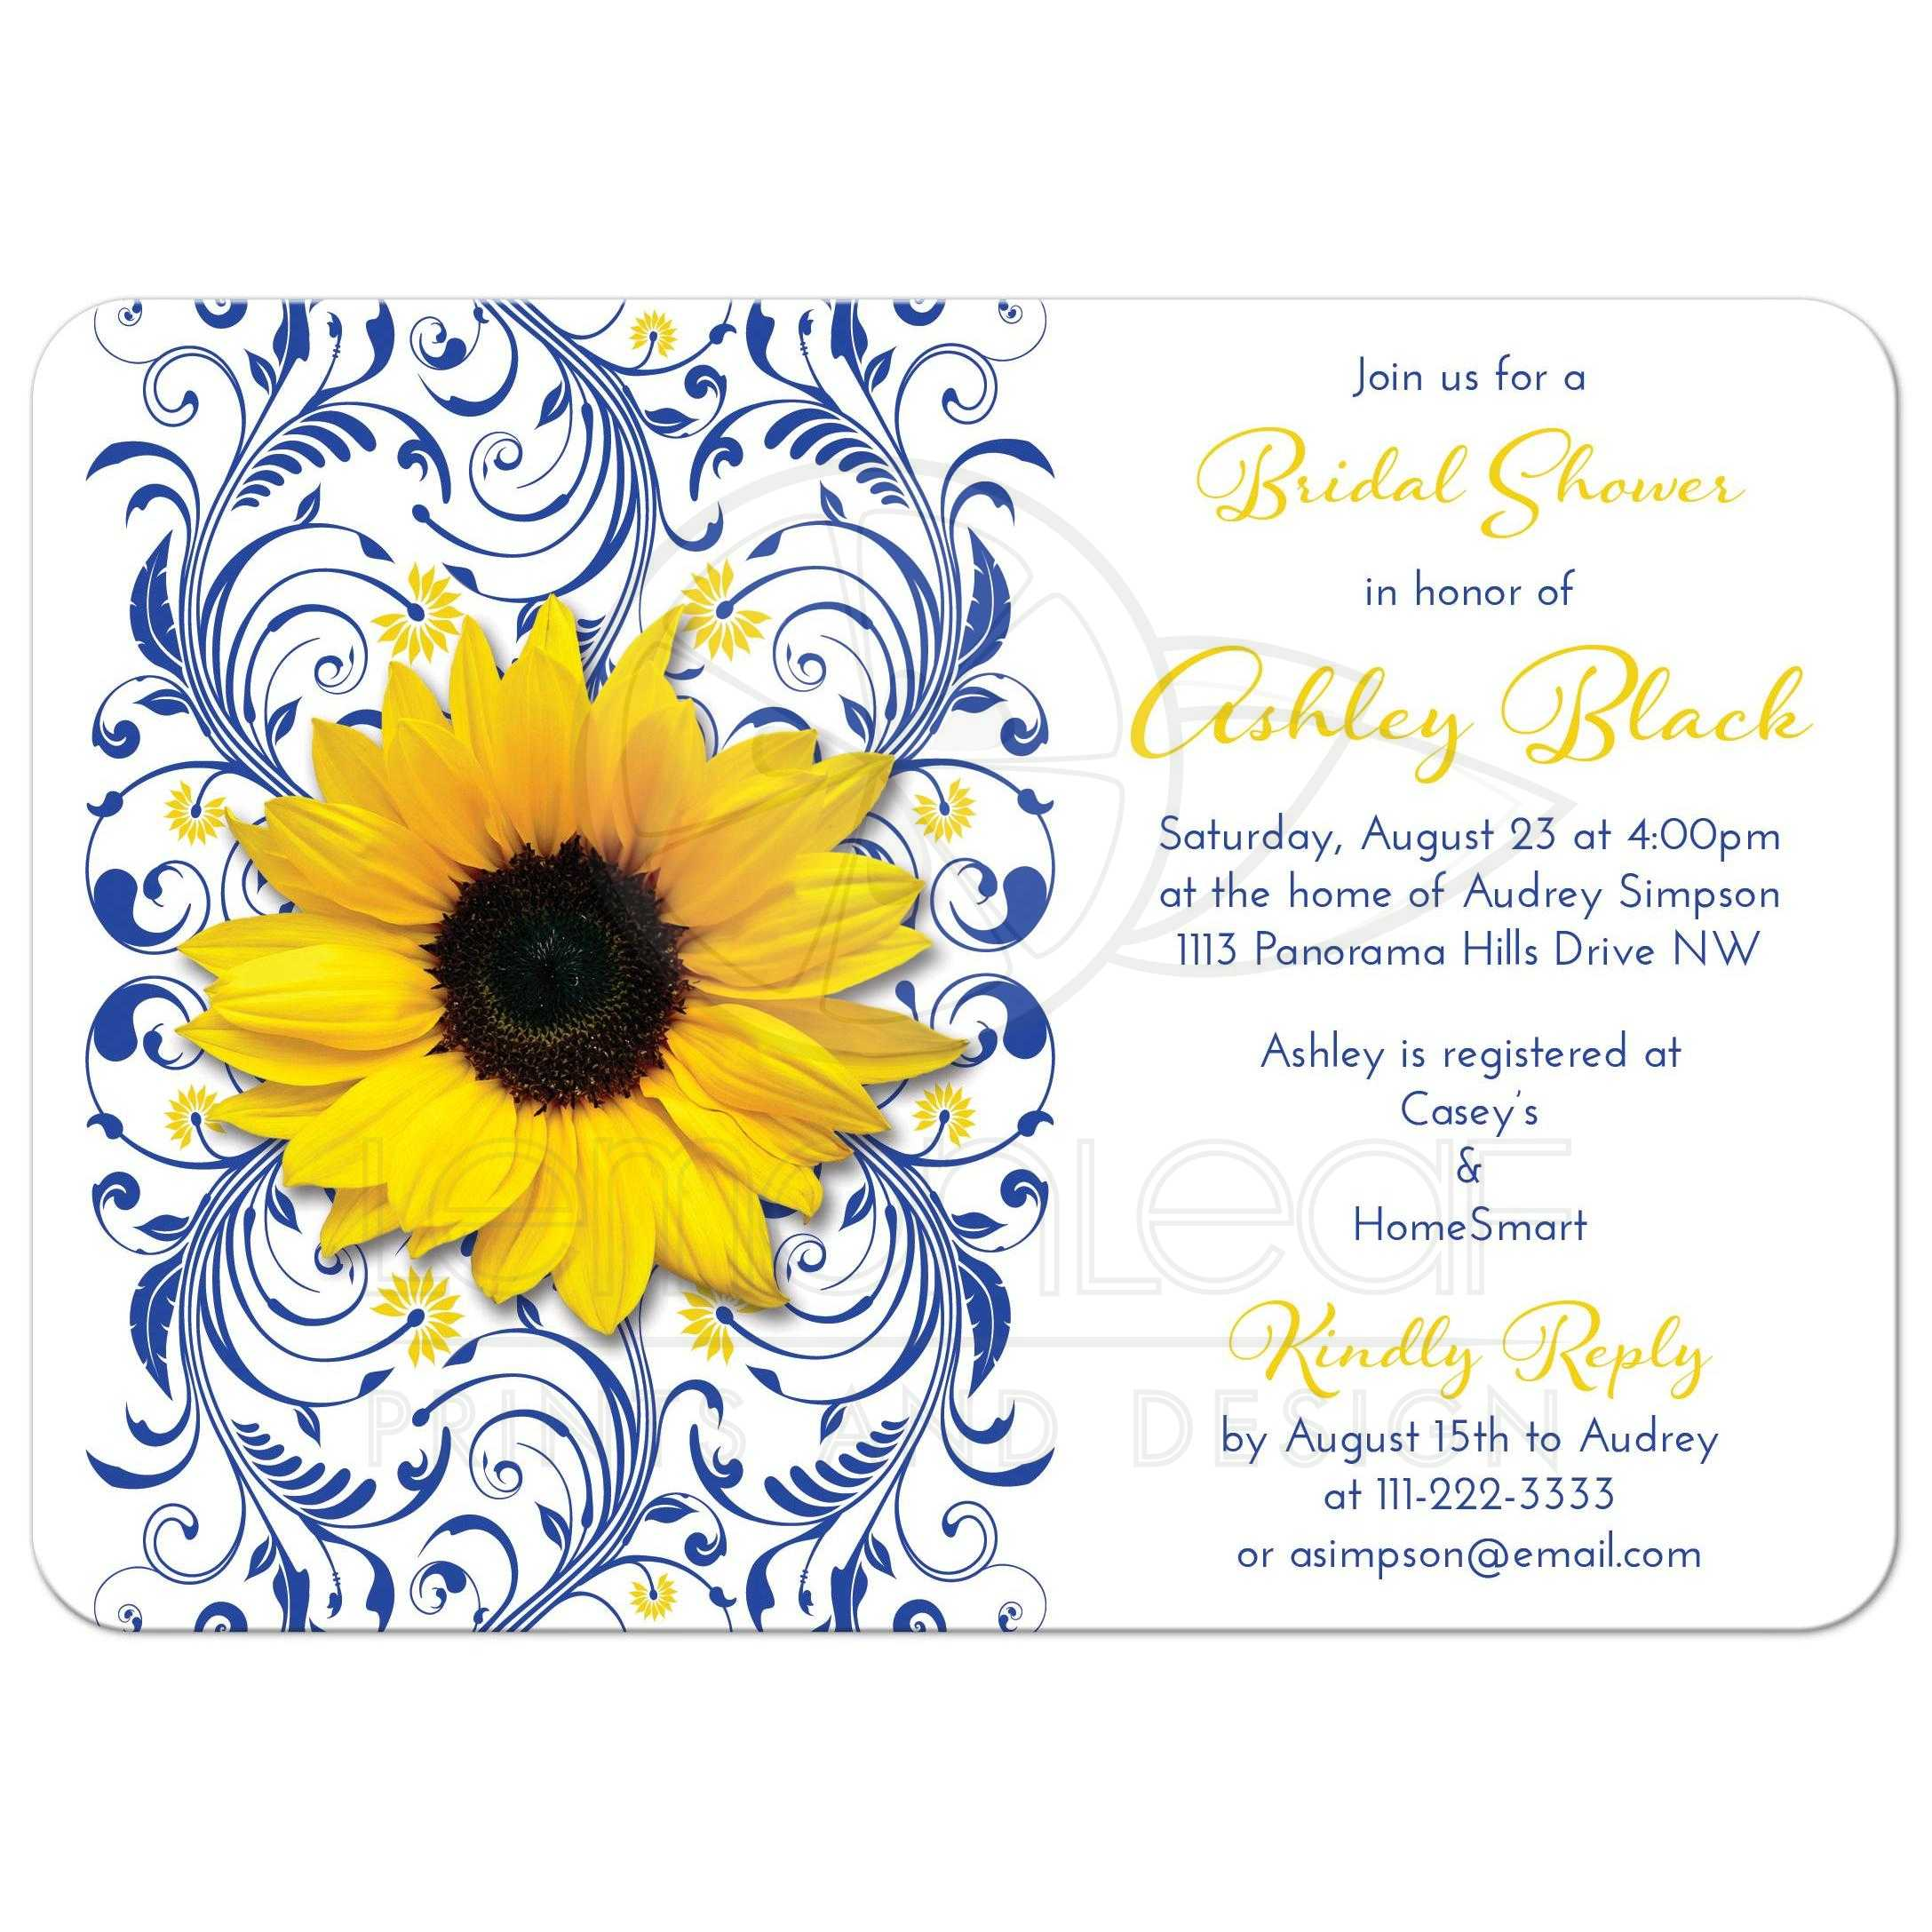 Bridal shower invitation sunflower cobalt blue floral cobalt blue and white floral yellow sunflower elegant bridal shower invitation filmwisefo